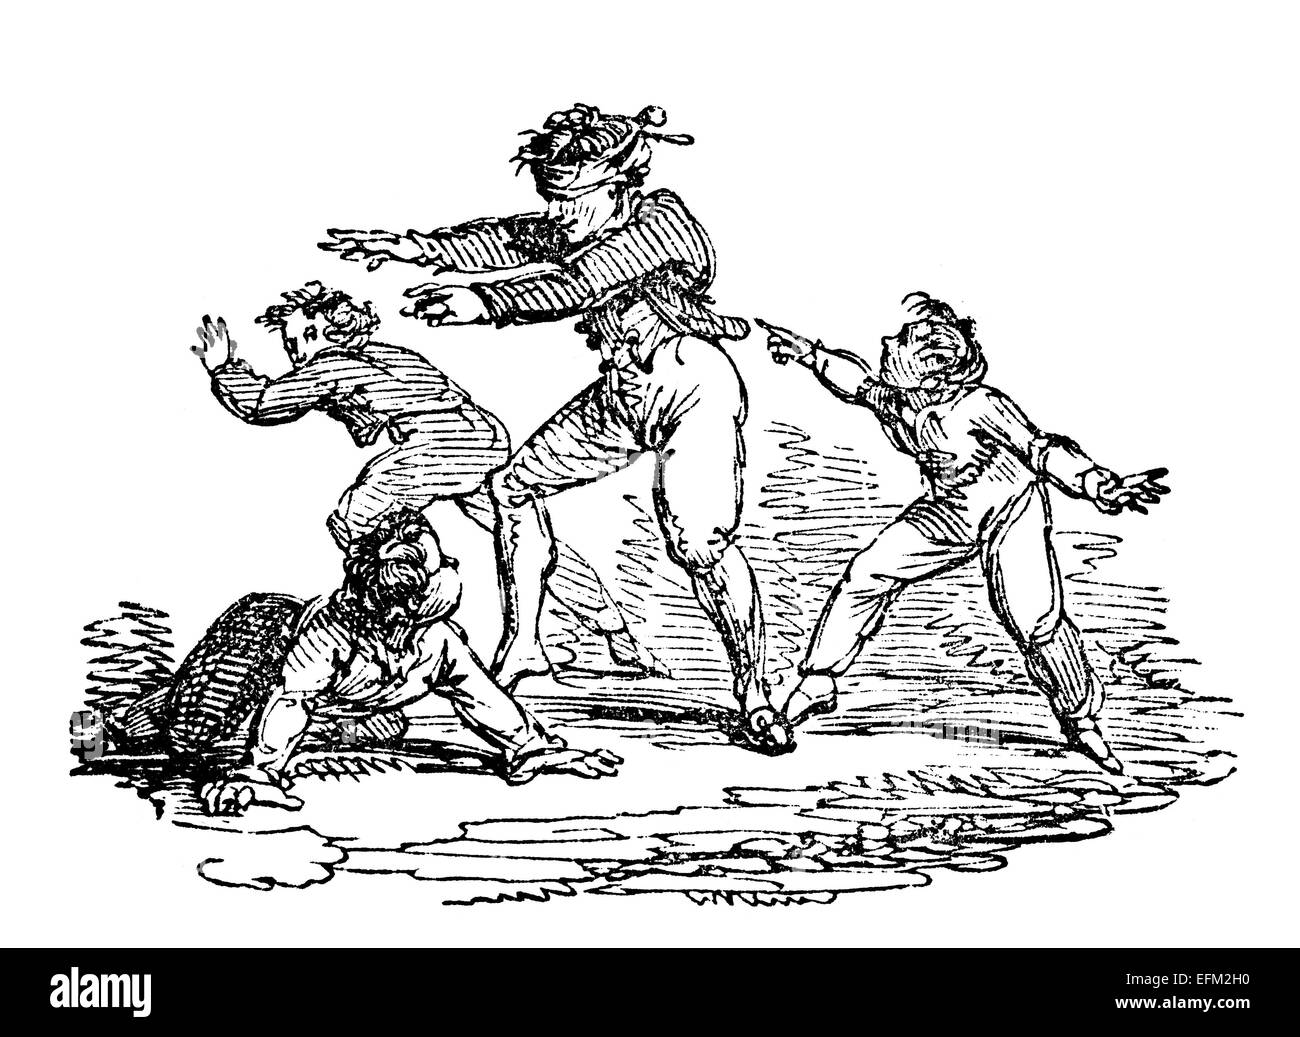 19th century engraving of children playing Blind Man's Bluff - Stock Image